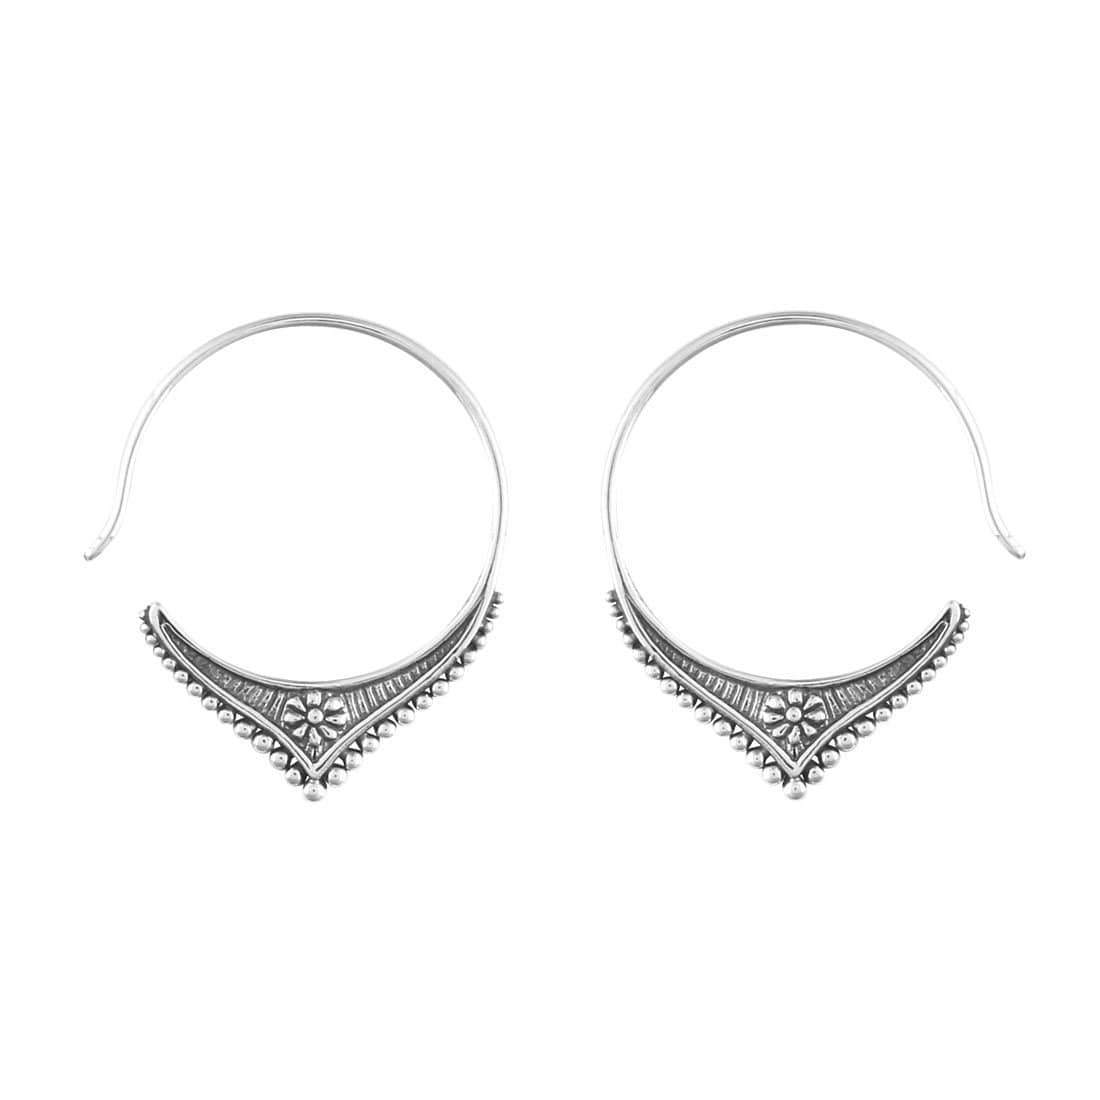 Midsummer Star Earrings Malabar Hoops